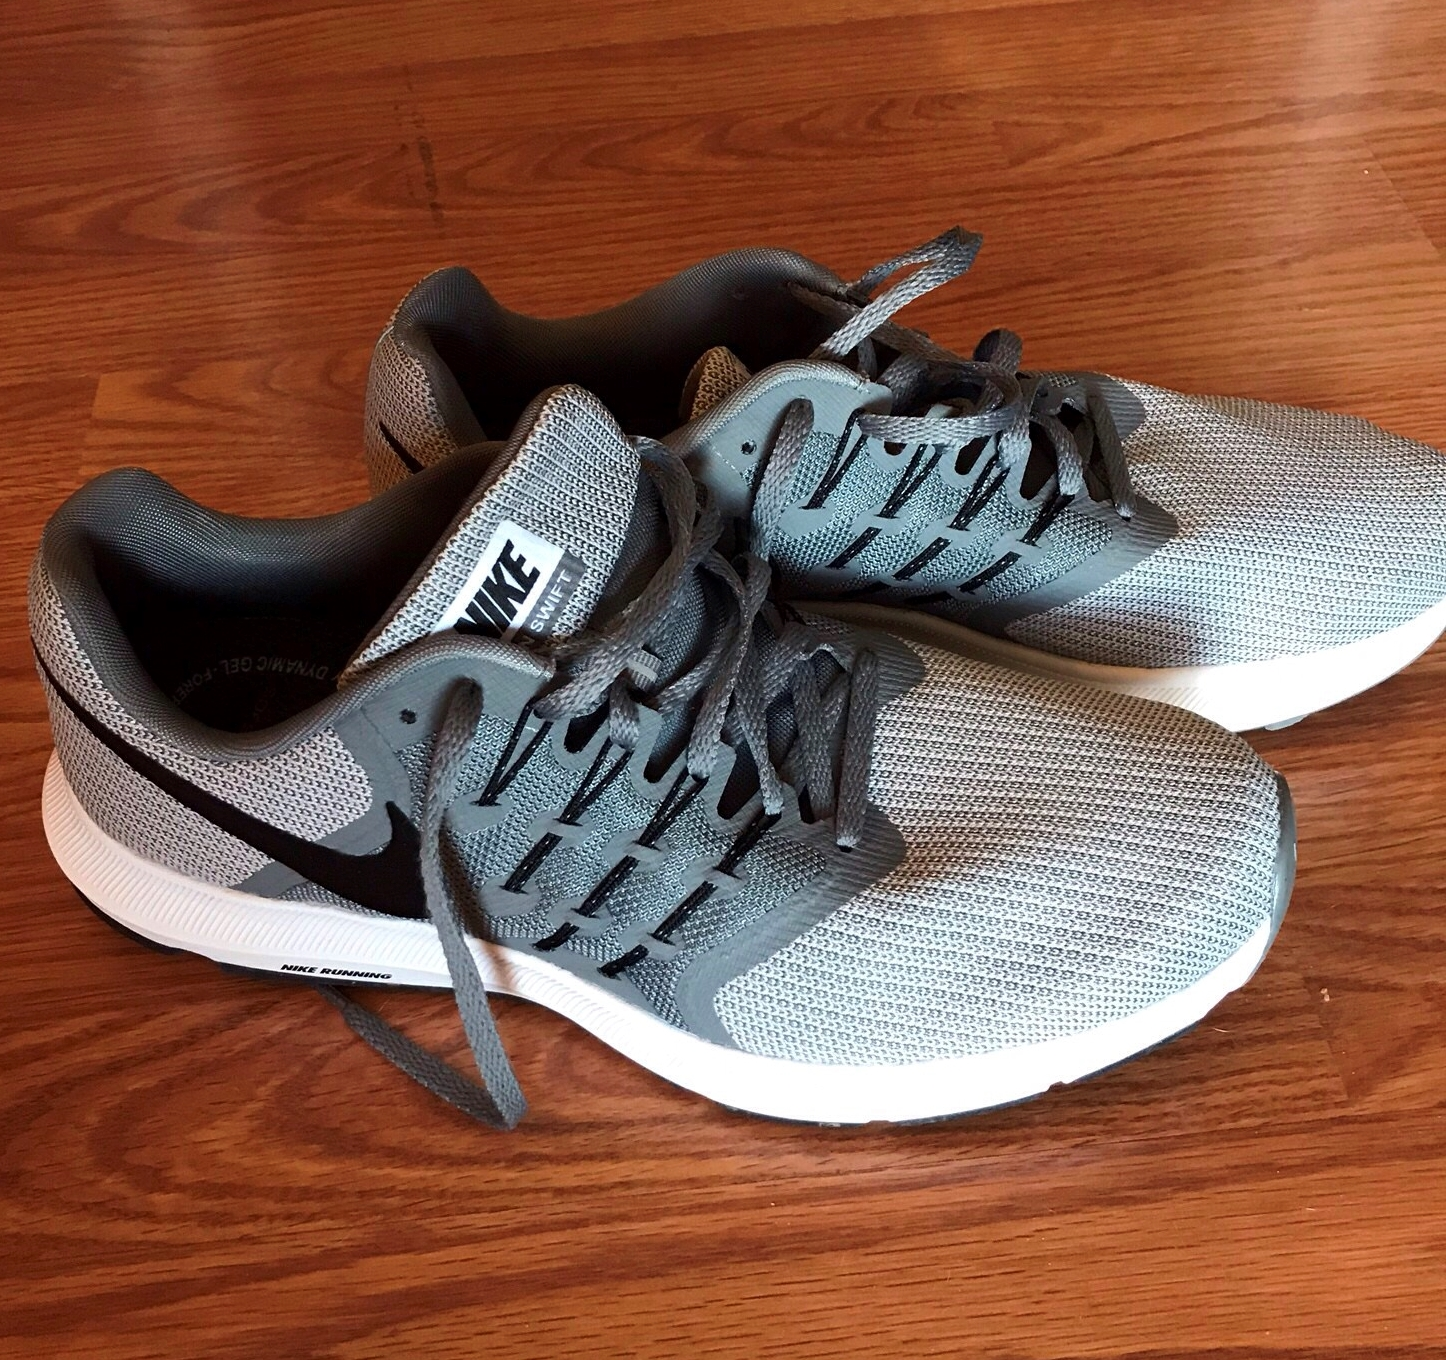 633860fabe0 nike running shoe. Check Amazon prices HERE.